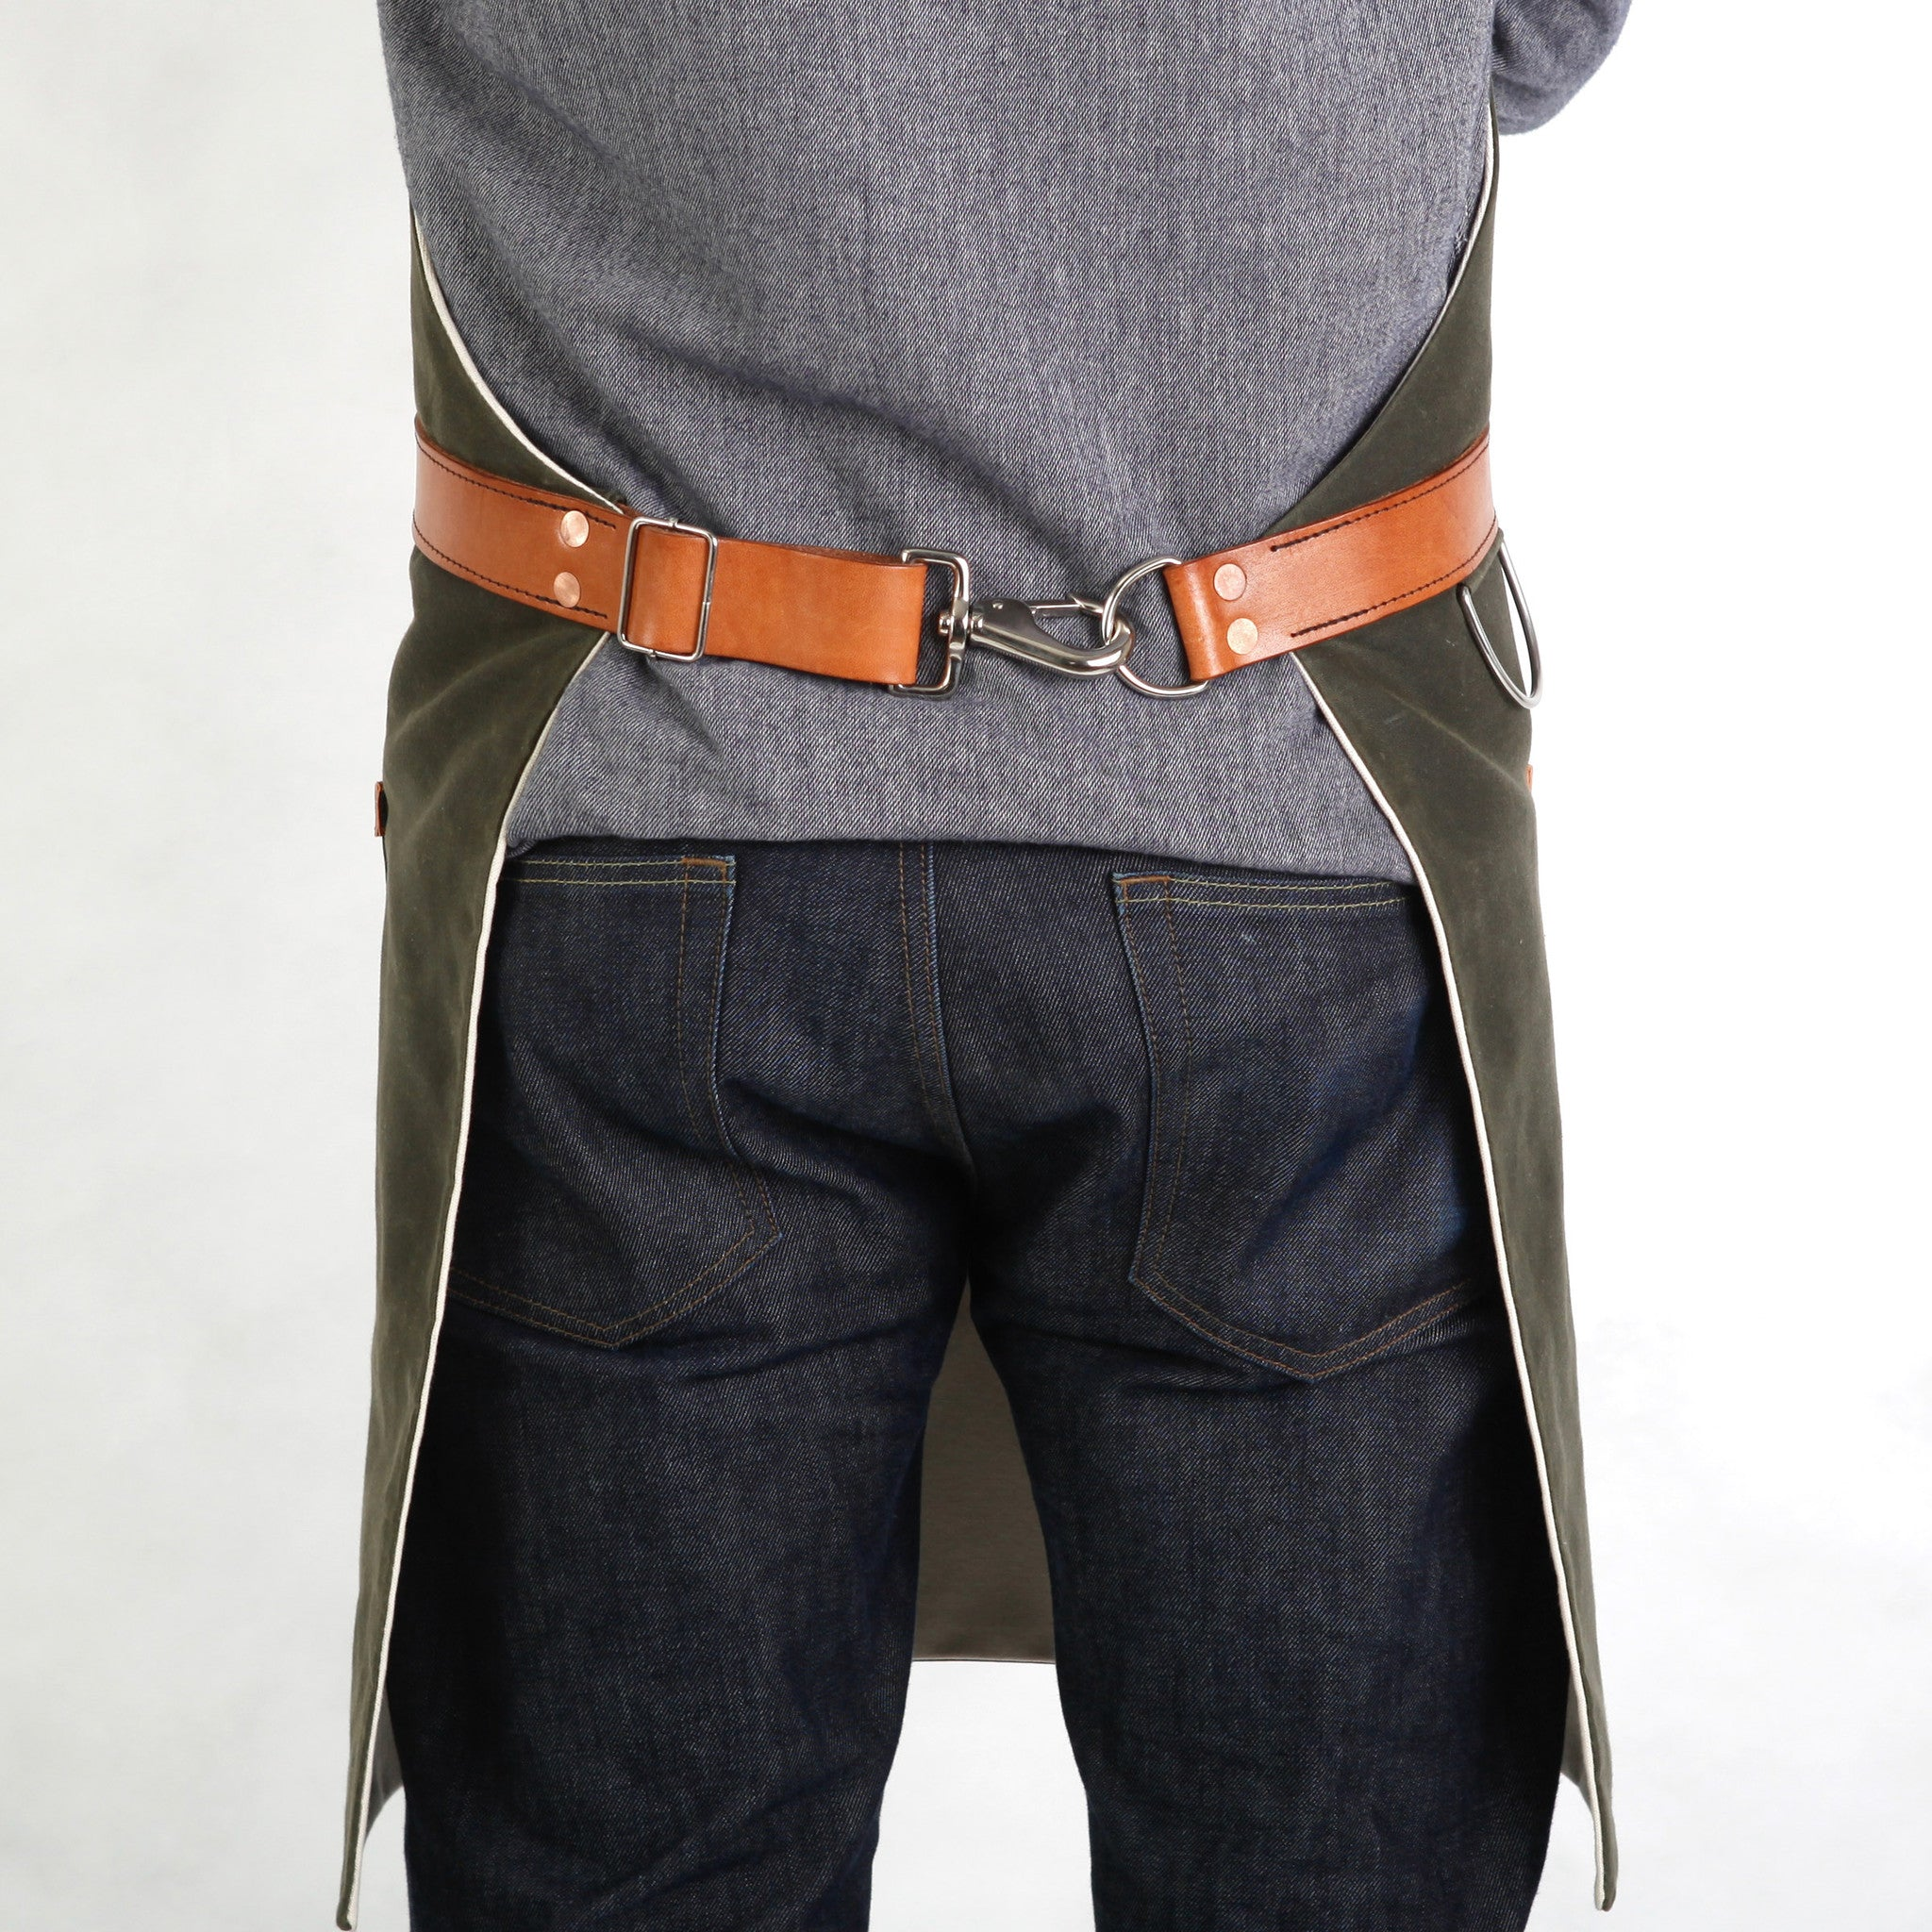 Canvas Apron   Olive Waxed   Apron for Men   Hardmill